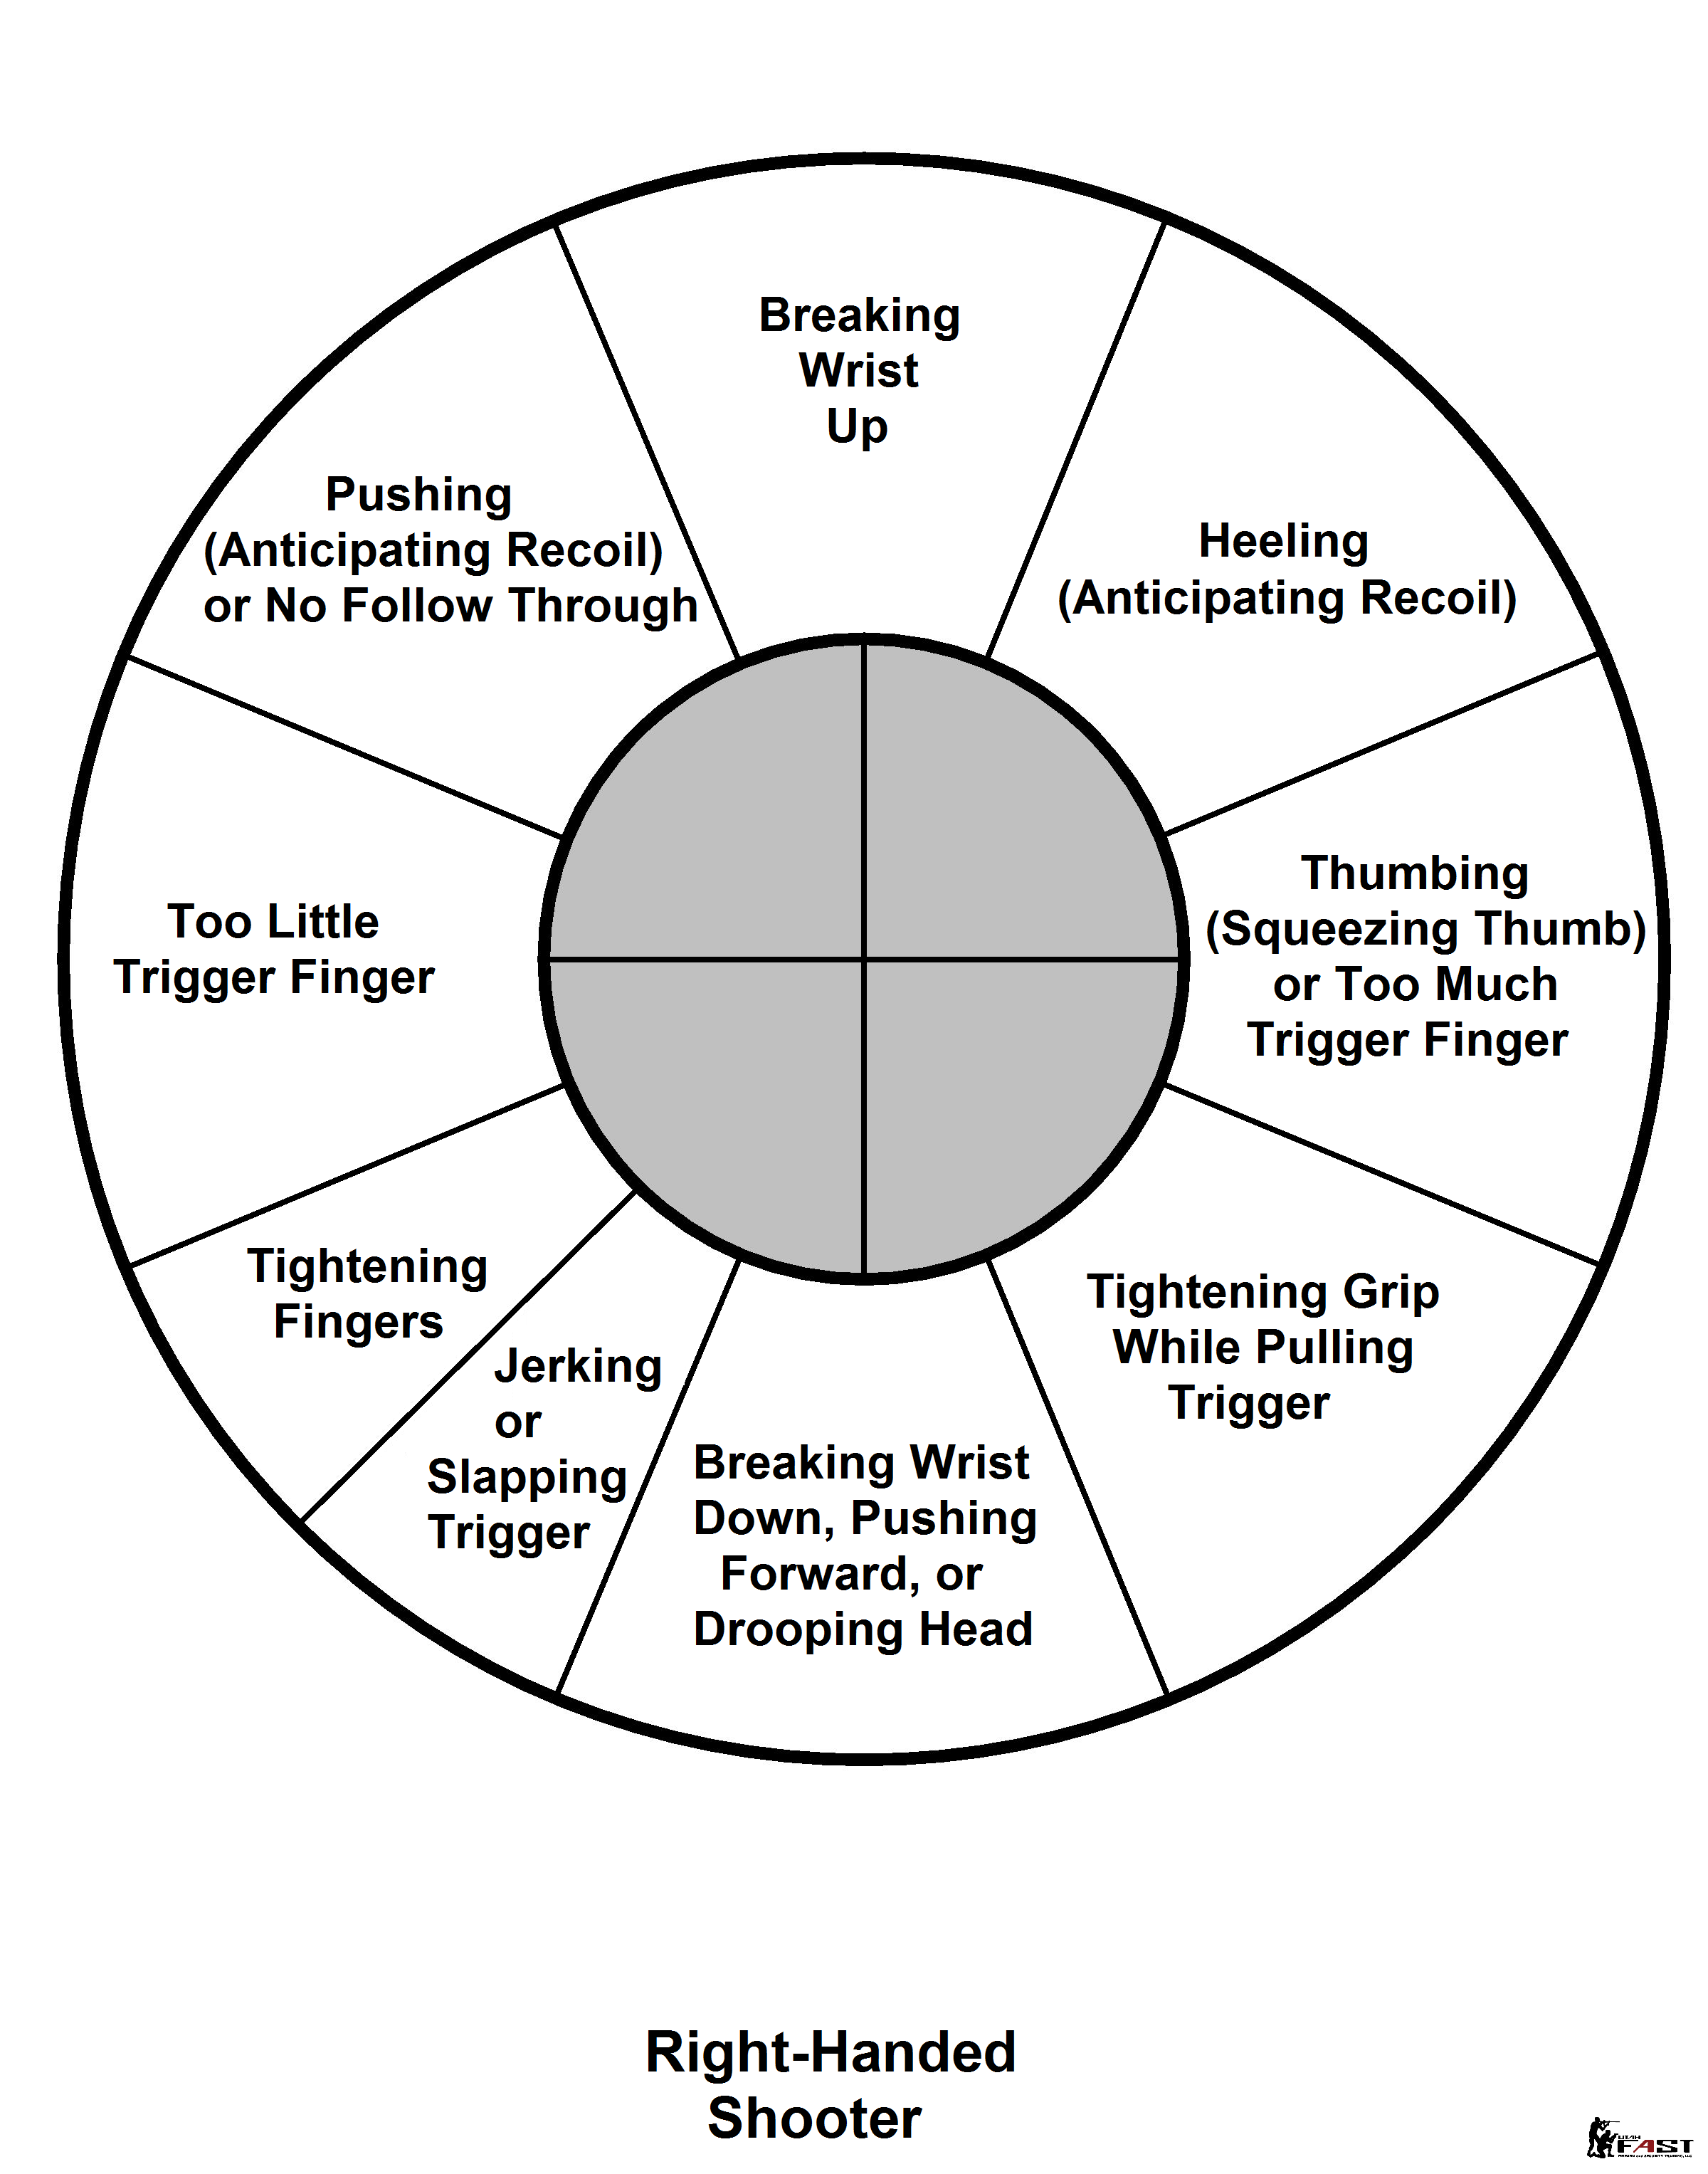 Target Analysis Chart for a Right Handed Shooter (via UtahCarry)